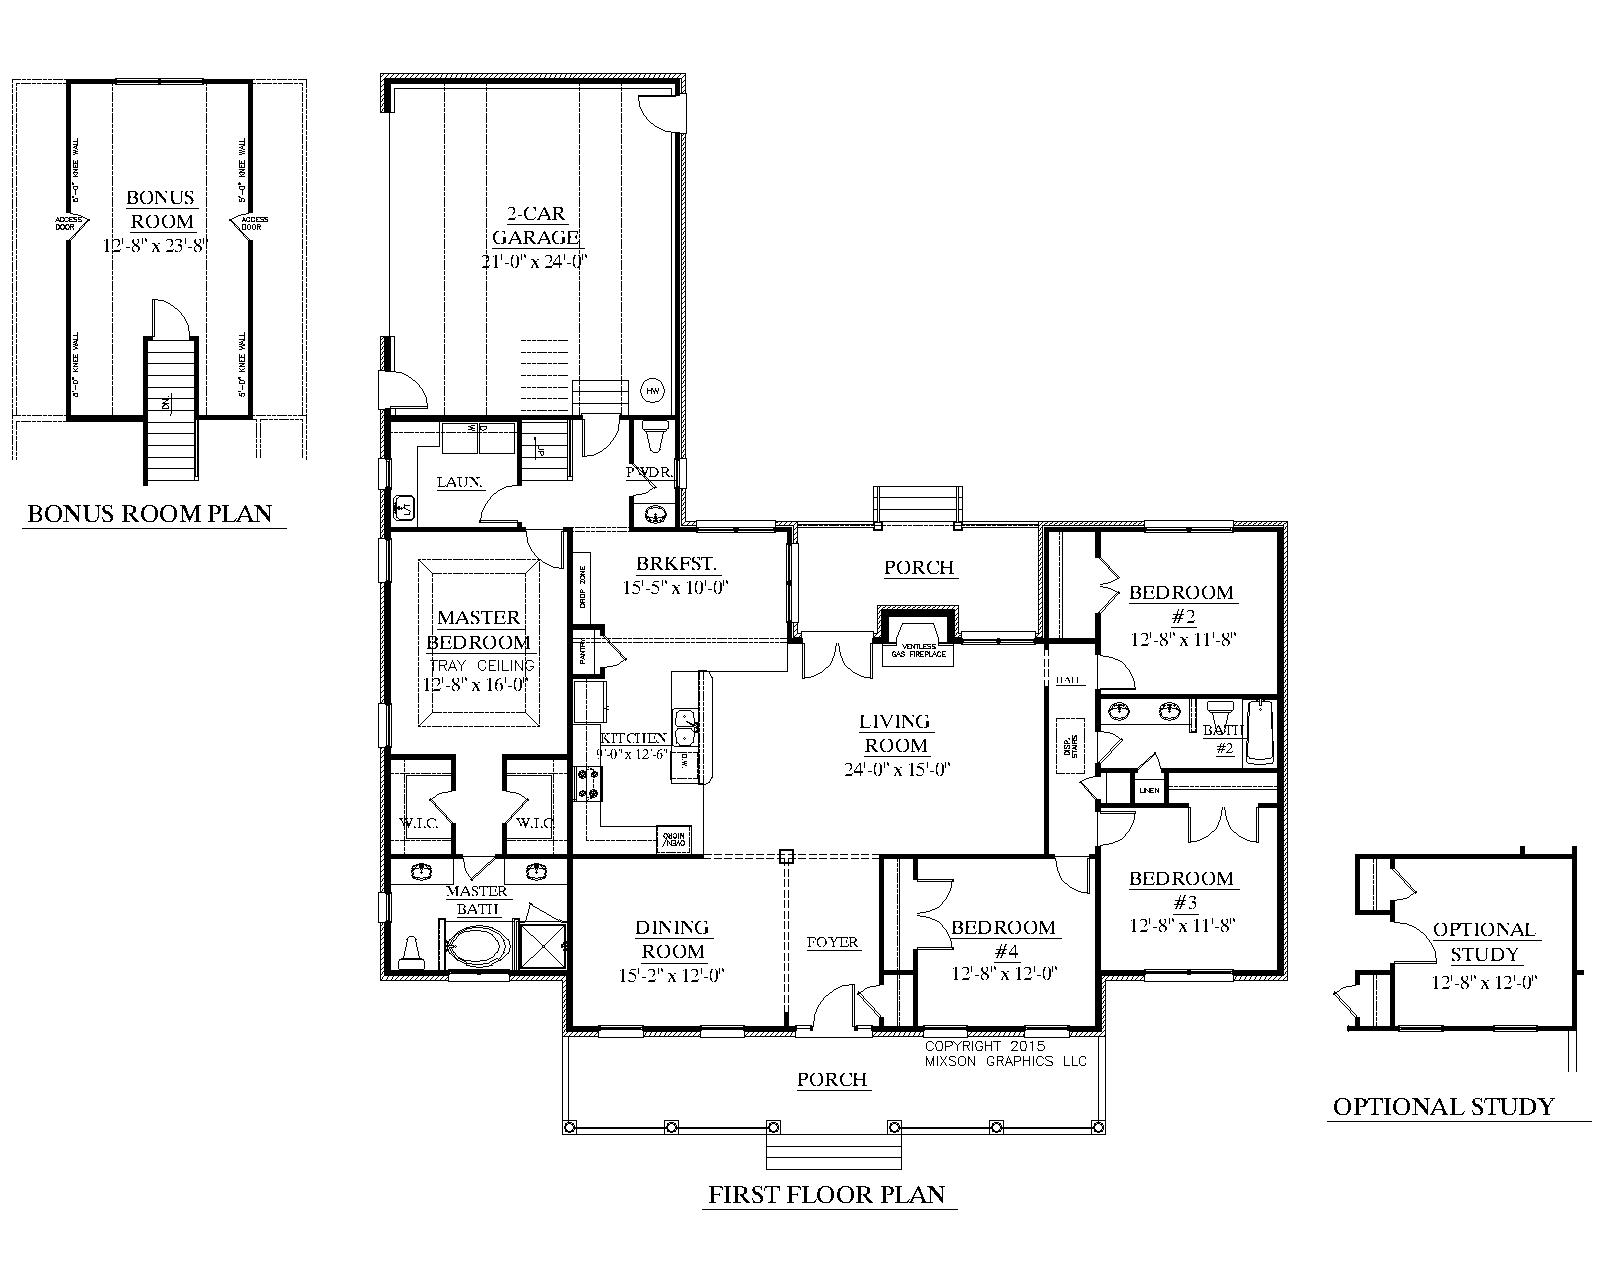 House plan 2224 2 b the birchwood b floor plan beautiful for One story house plans with bonus room